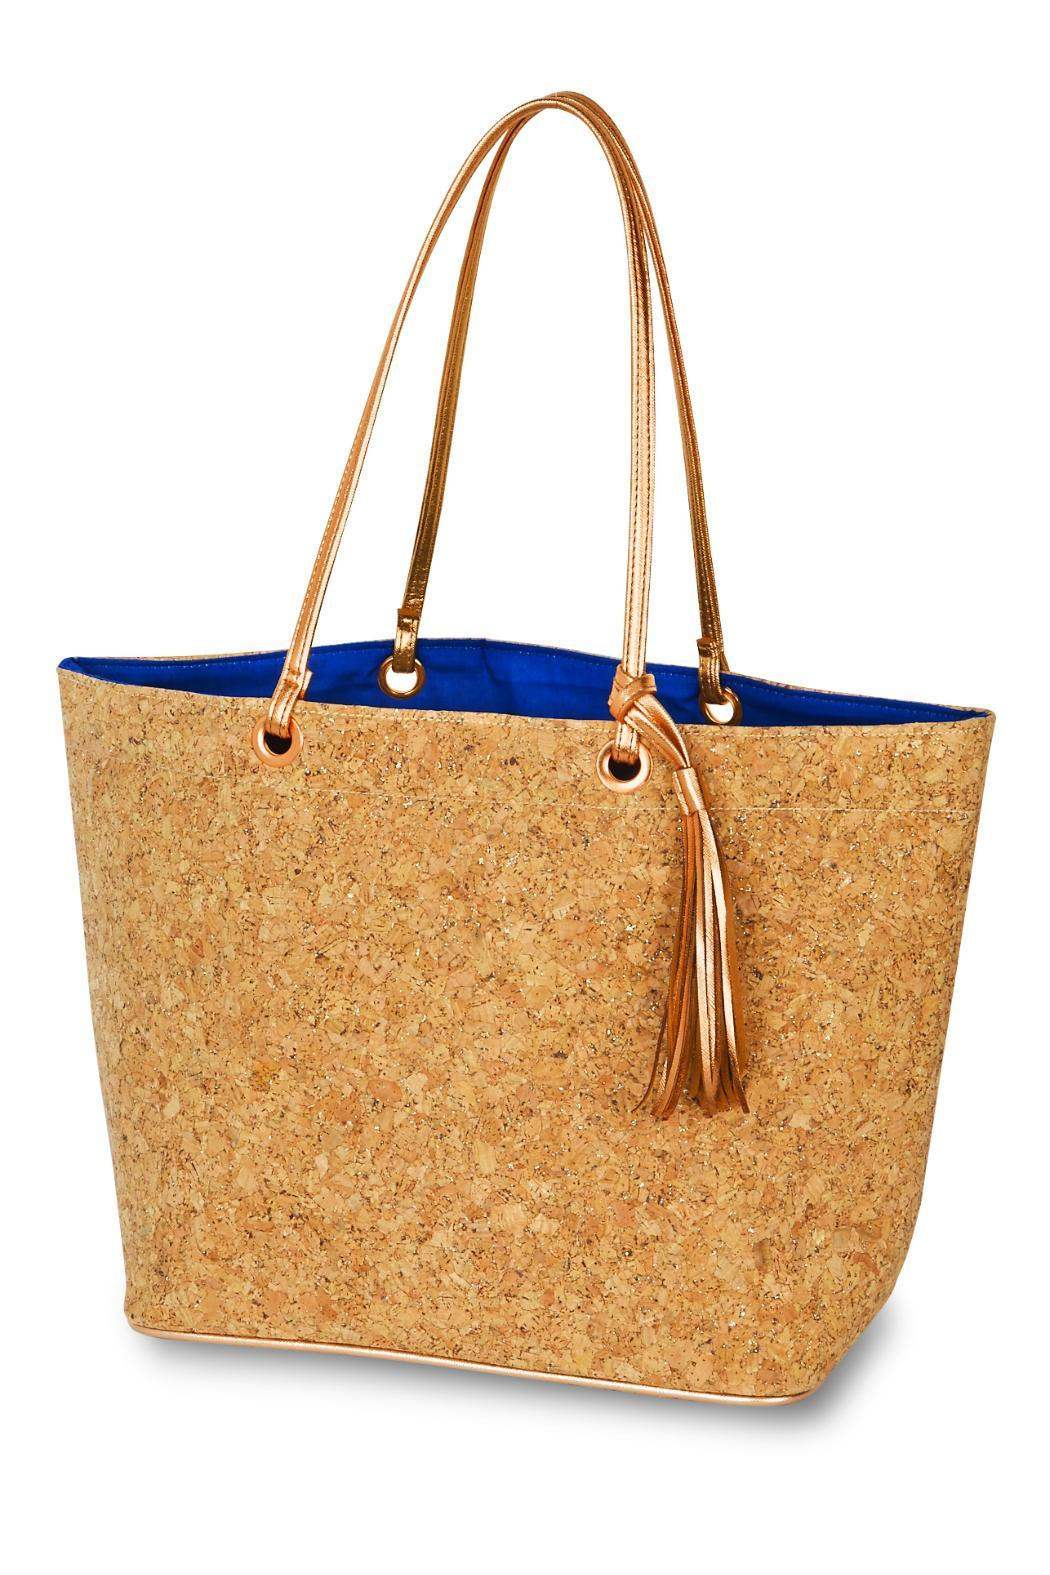 Mud Pie Cork Tote Bag - Main Image